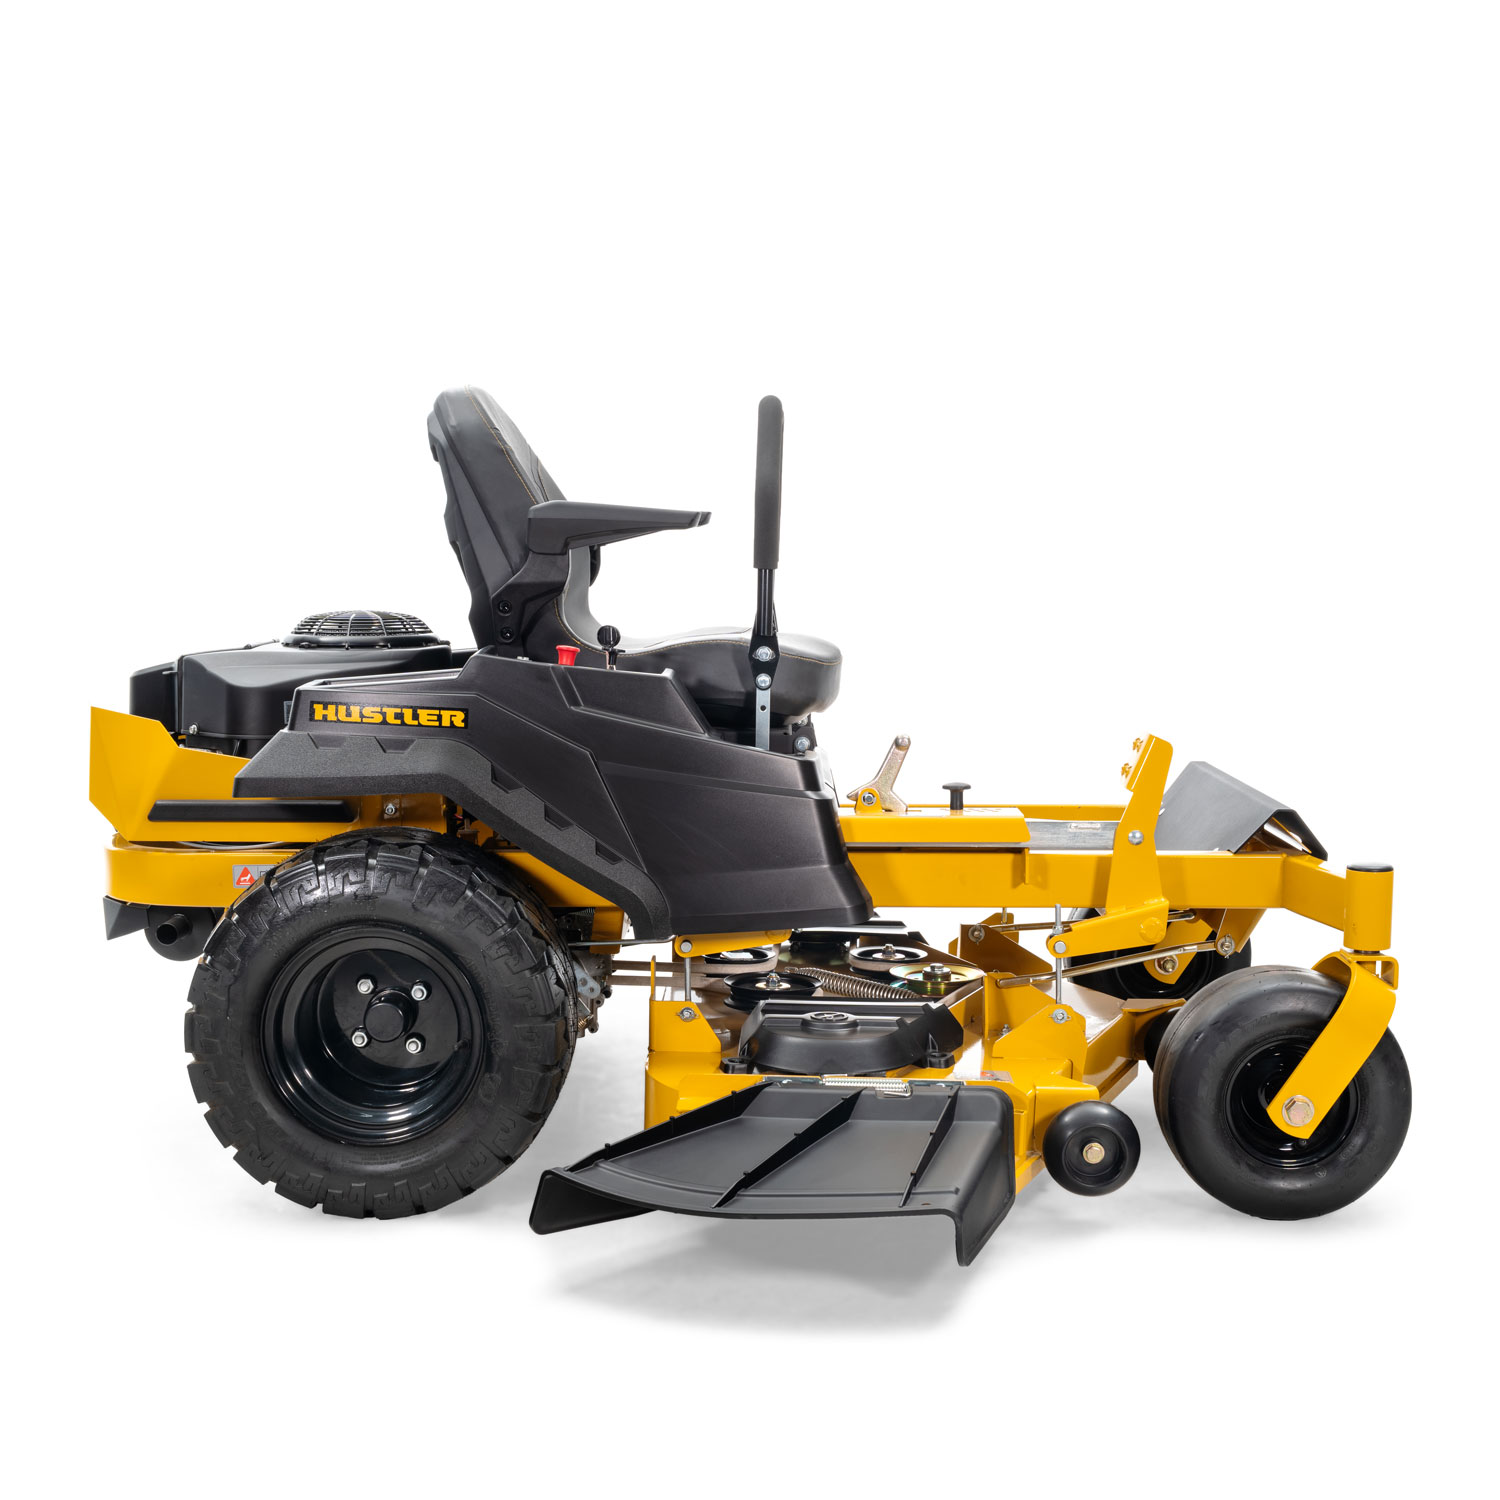 Image of the profile of a yellow Hustler mower